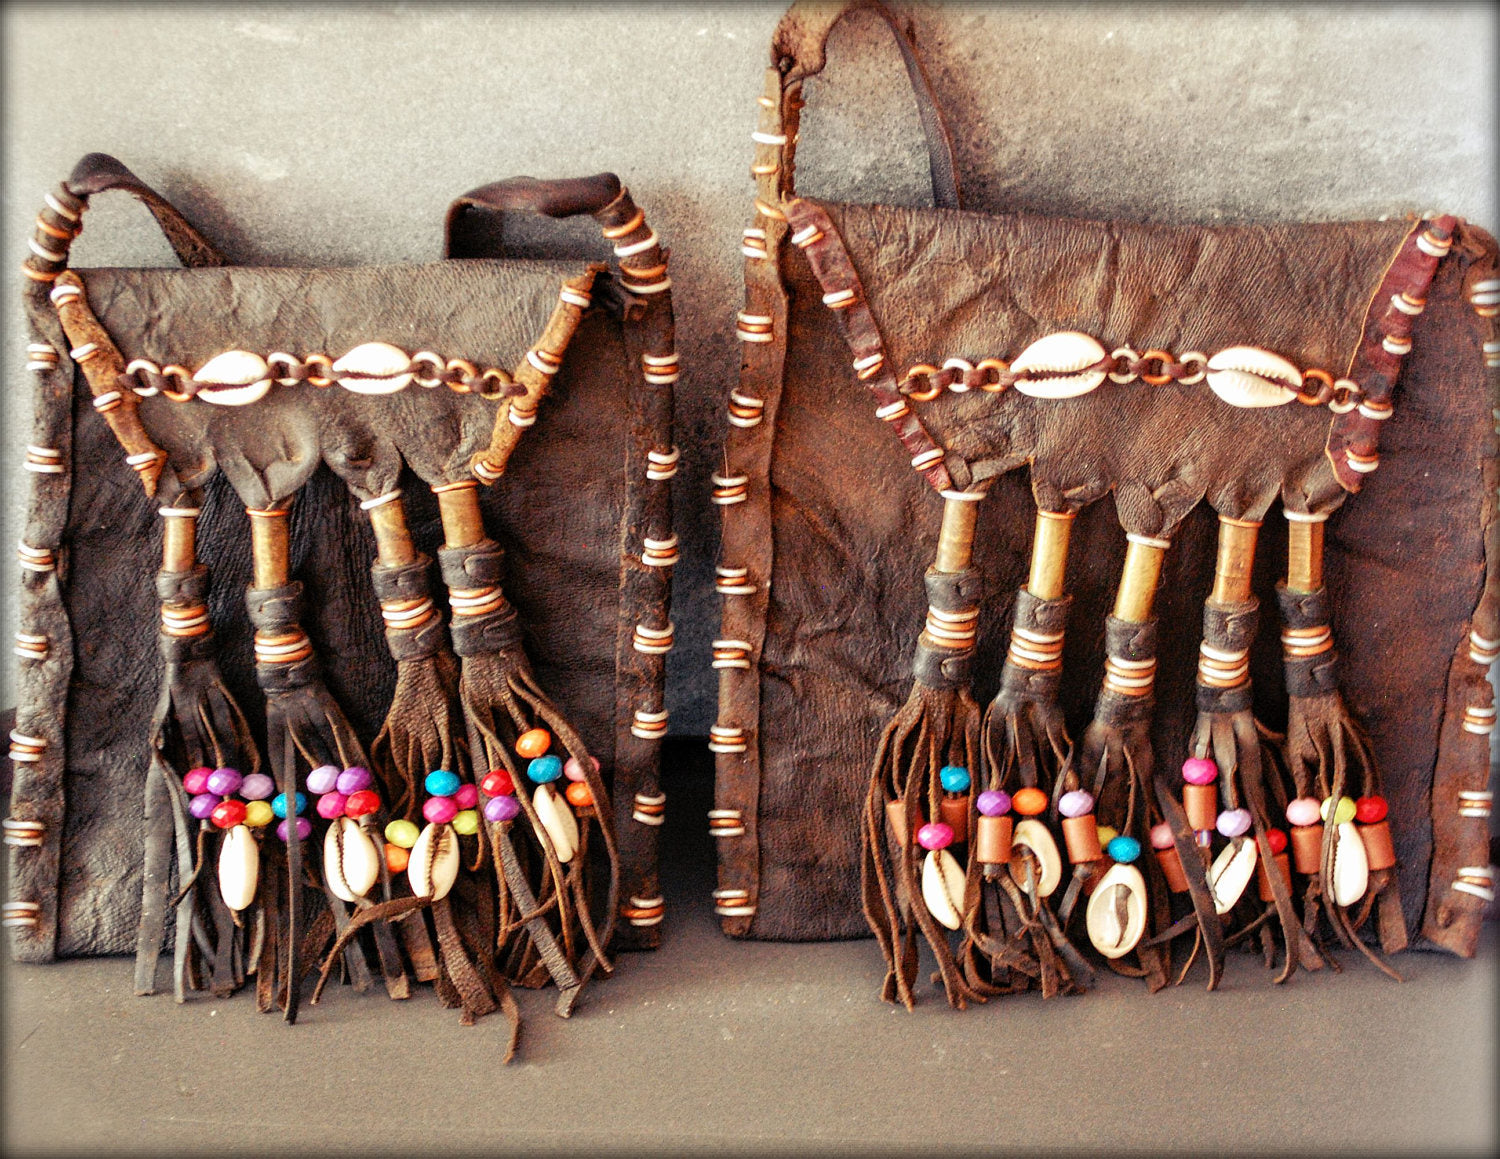 Wodaabe Leather Bag with Cowrie Shells - Fulani Leather Bag from Mali - Tribal Leather Bag - African Leather Pouch